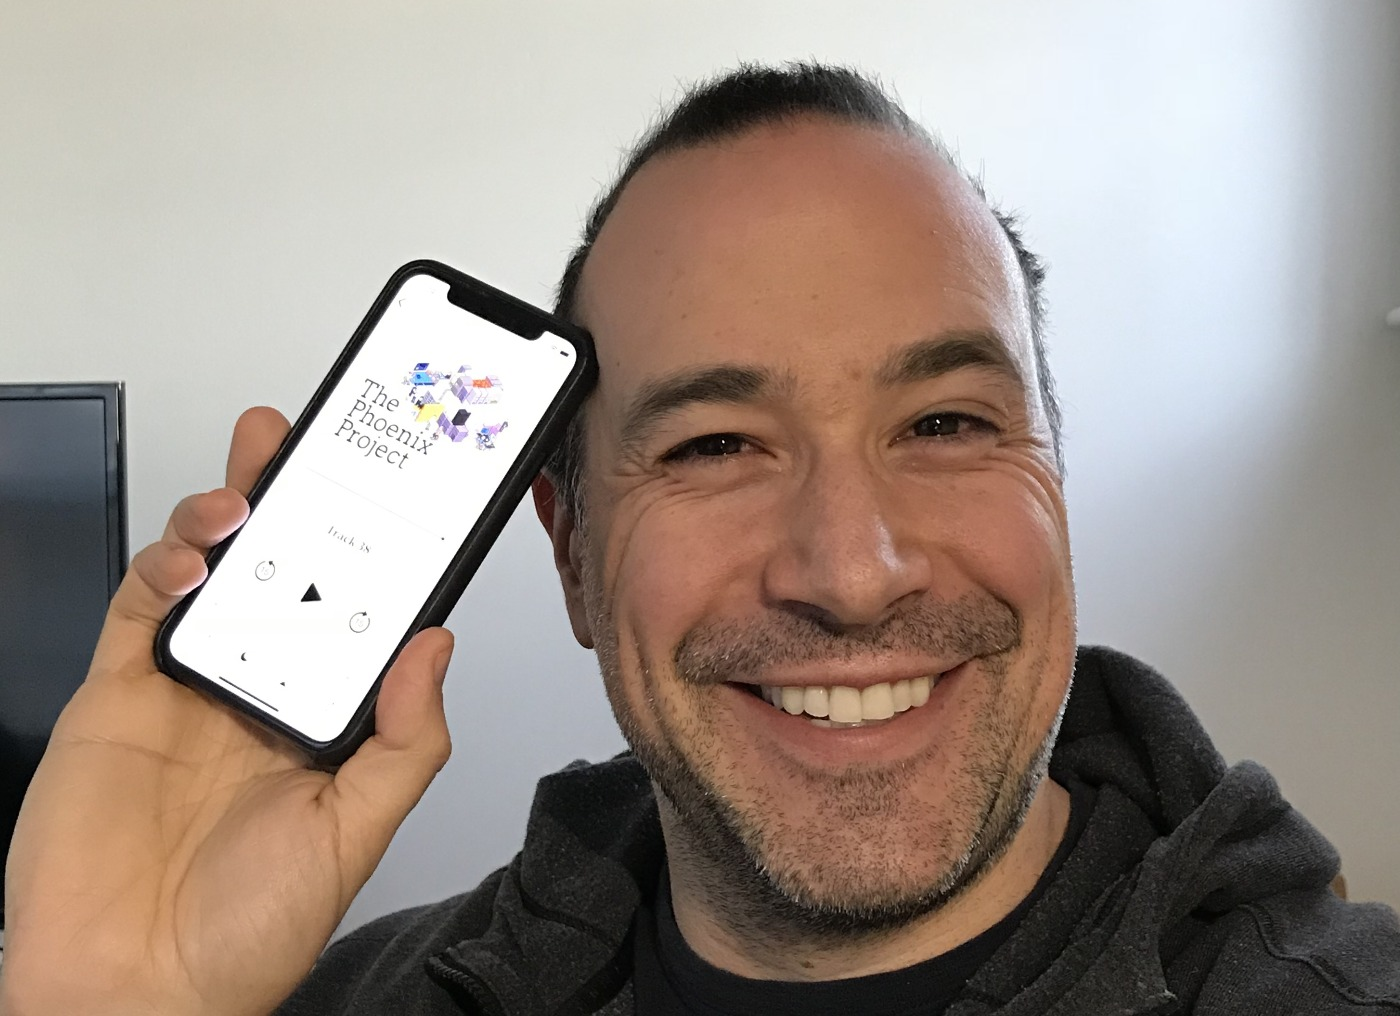 Ben Nadel holding an iPhone with iBooks showing The Phoenix Project.